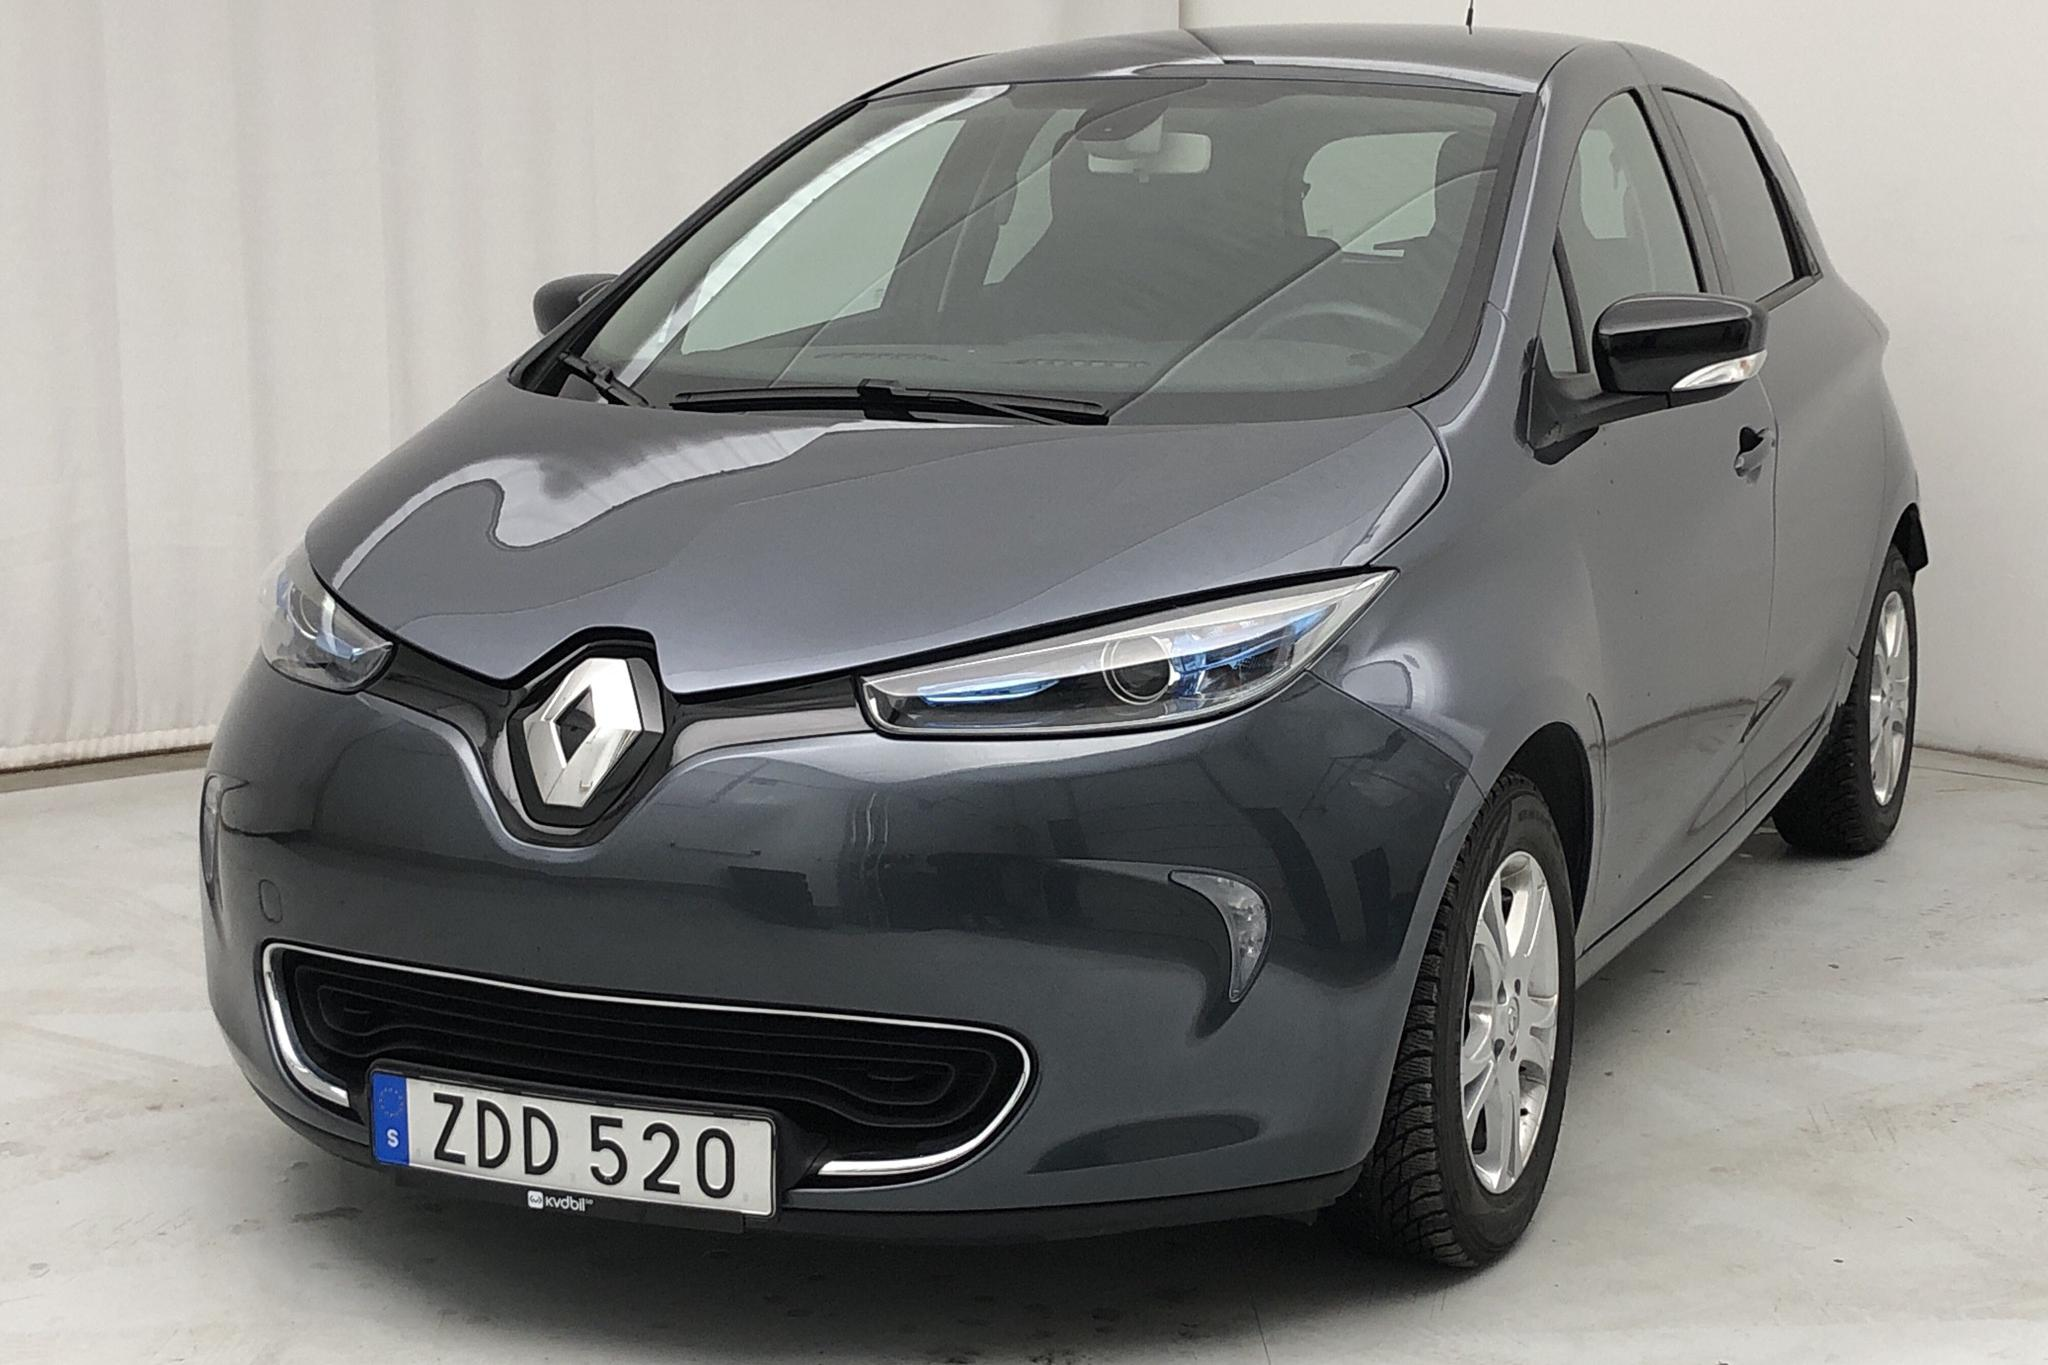 Renault Zoe 41 kWh R90 (92hk) - 31 340 km - Automatic - gray - 2018